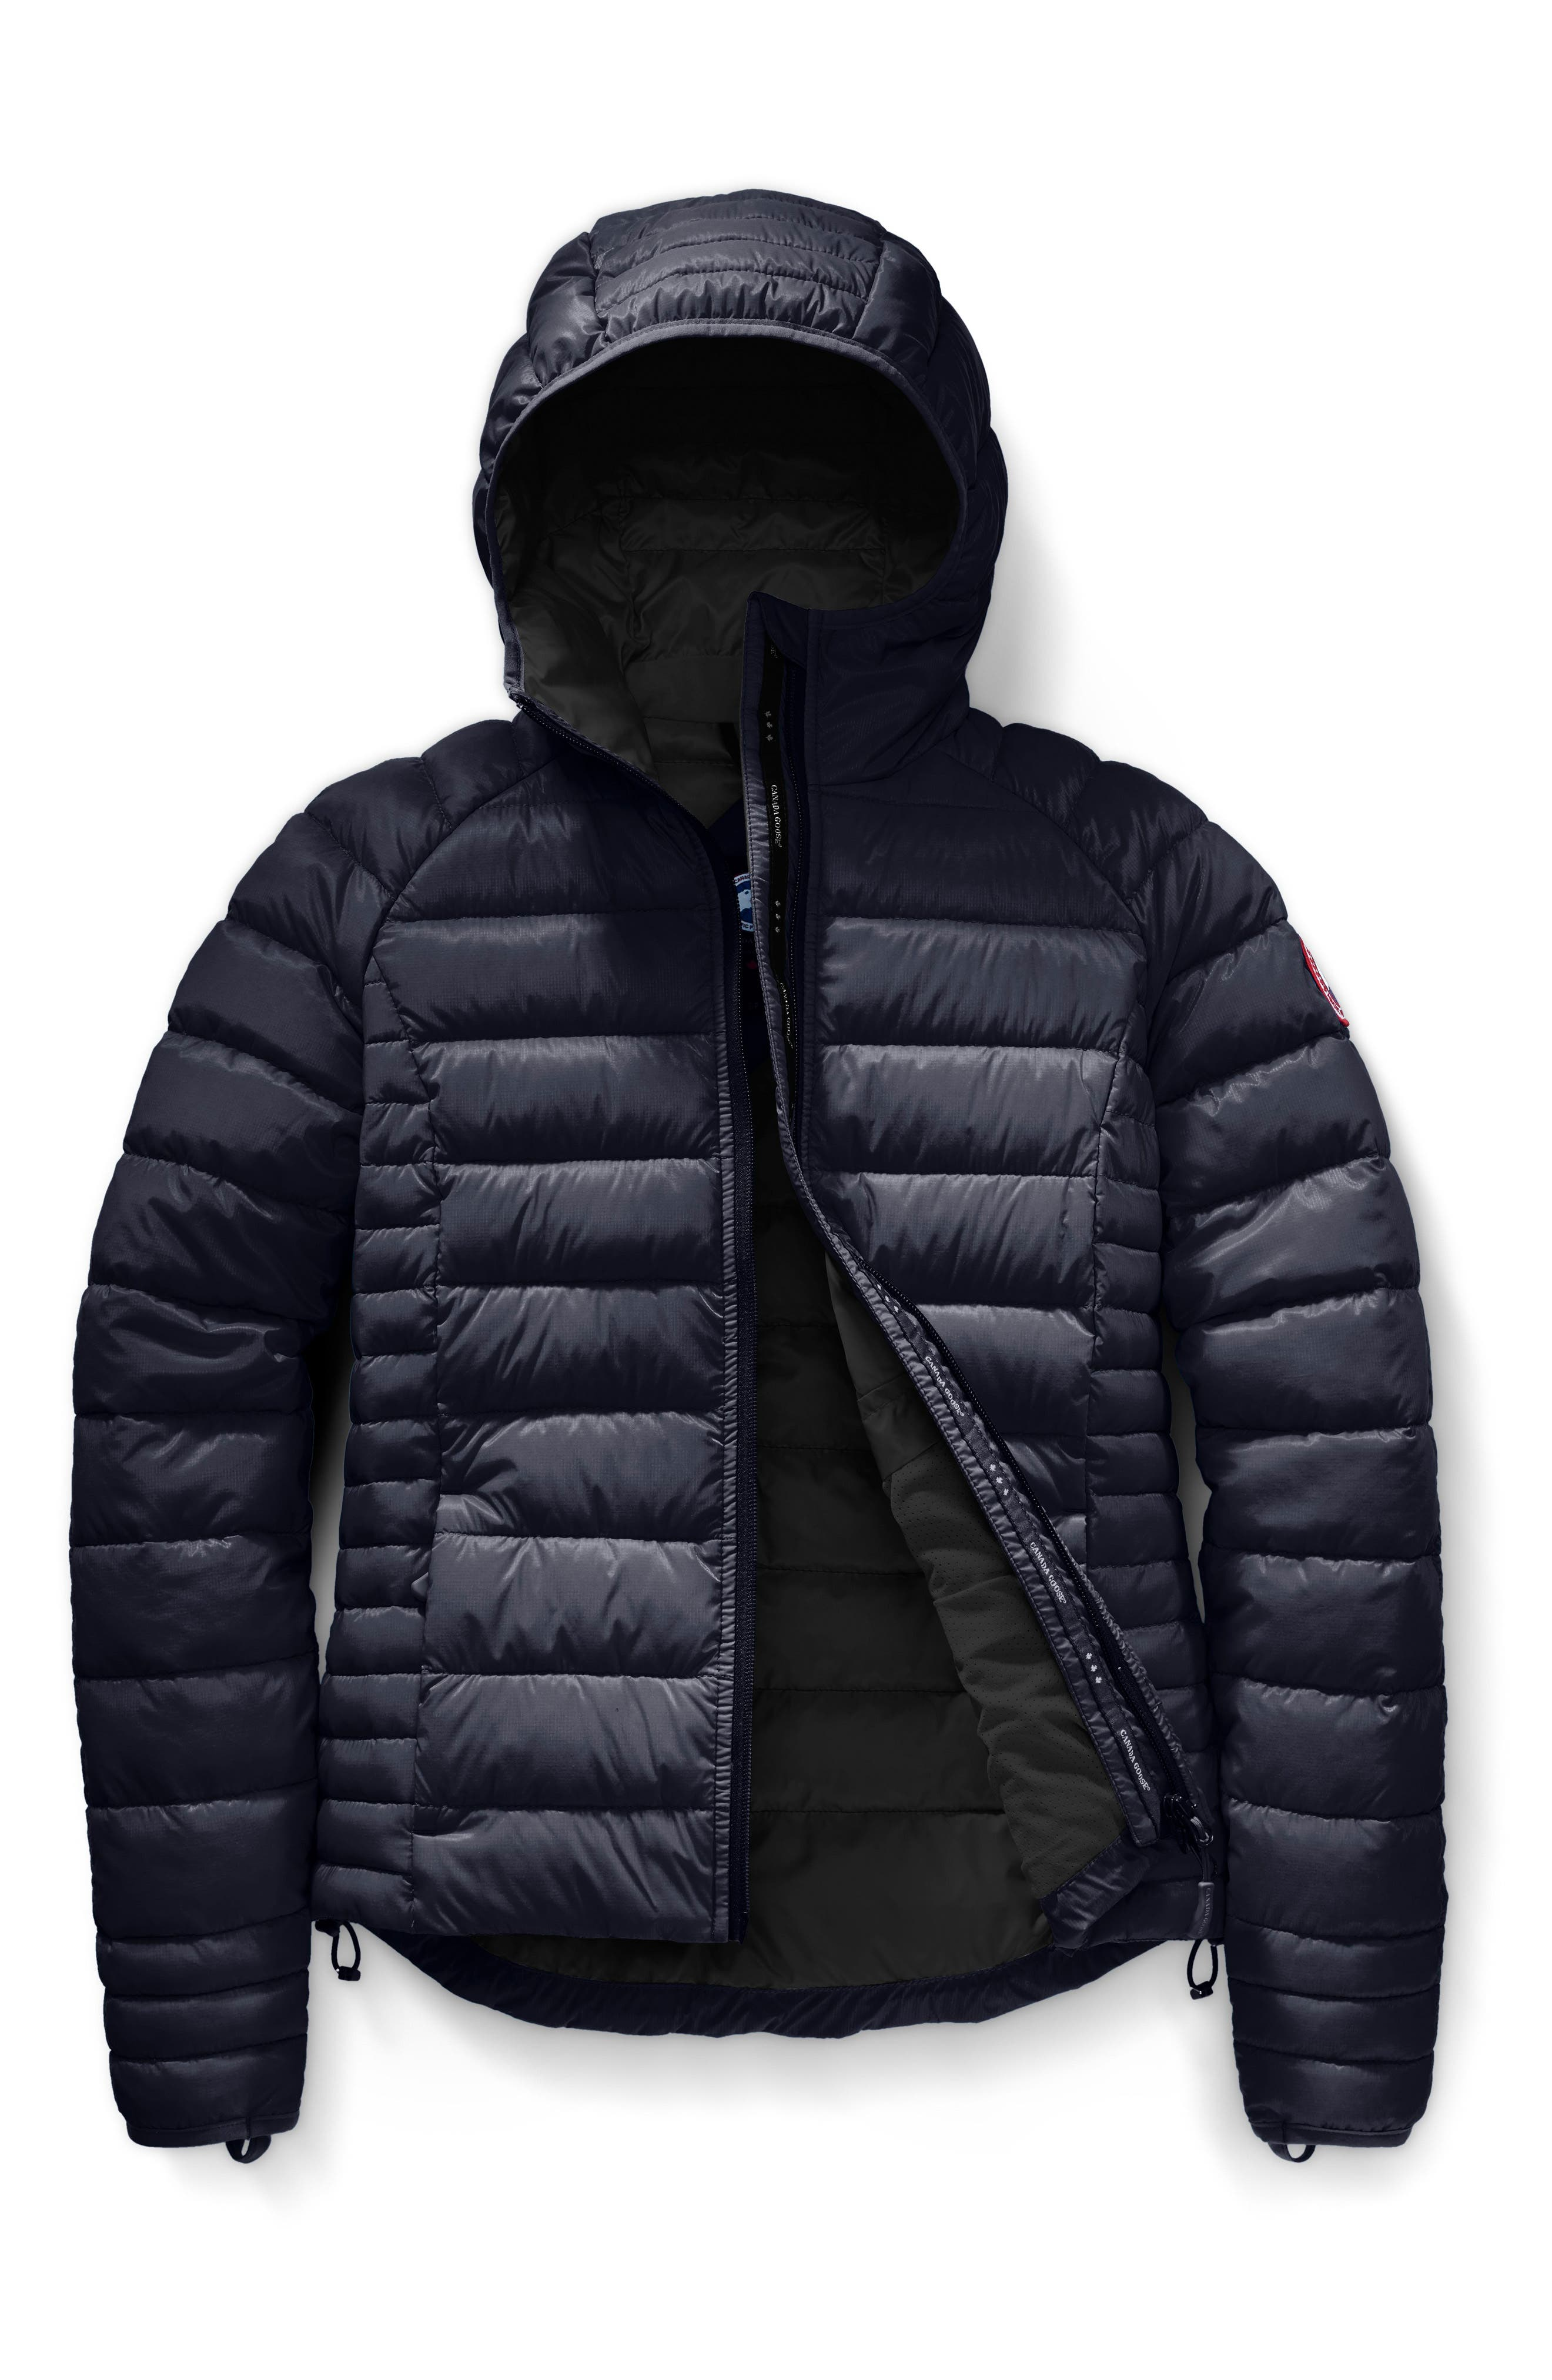 CANADA GOOSE, 'Brookvale' Packable Hooded Quilted Down Jacket, Alternate thumbnail 5, color, ADMIRAL BLUE/ BLACK